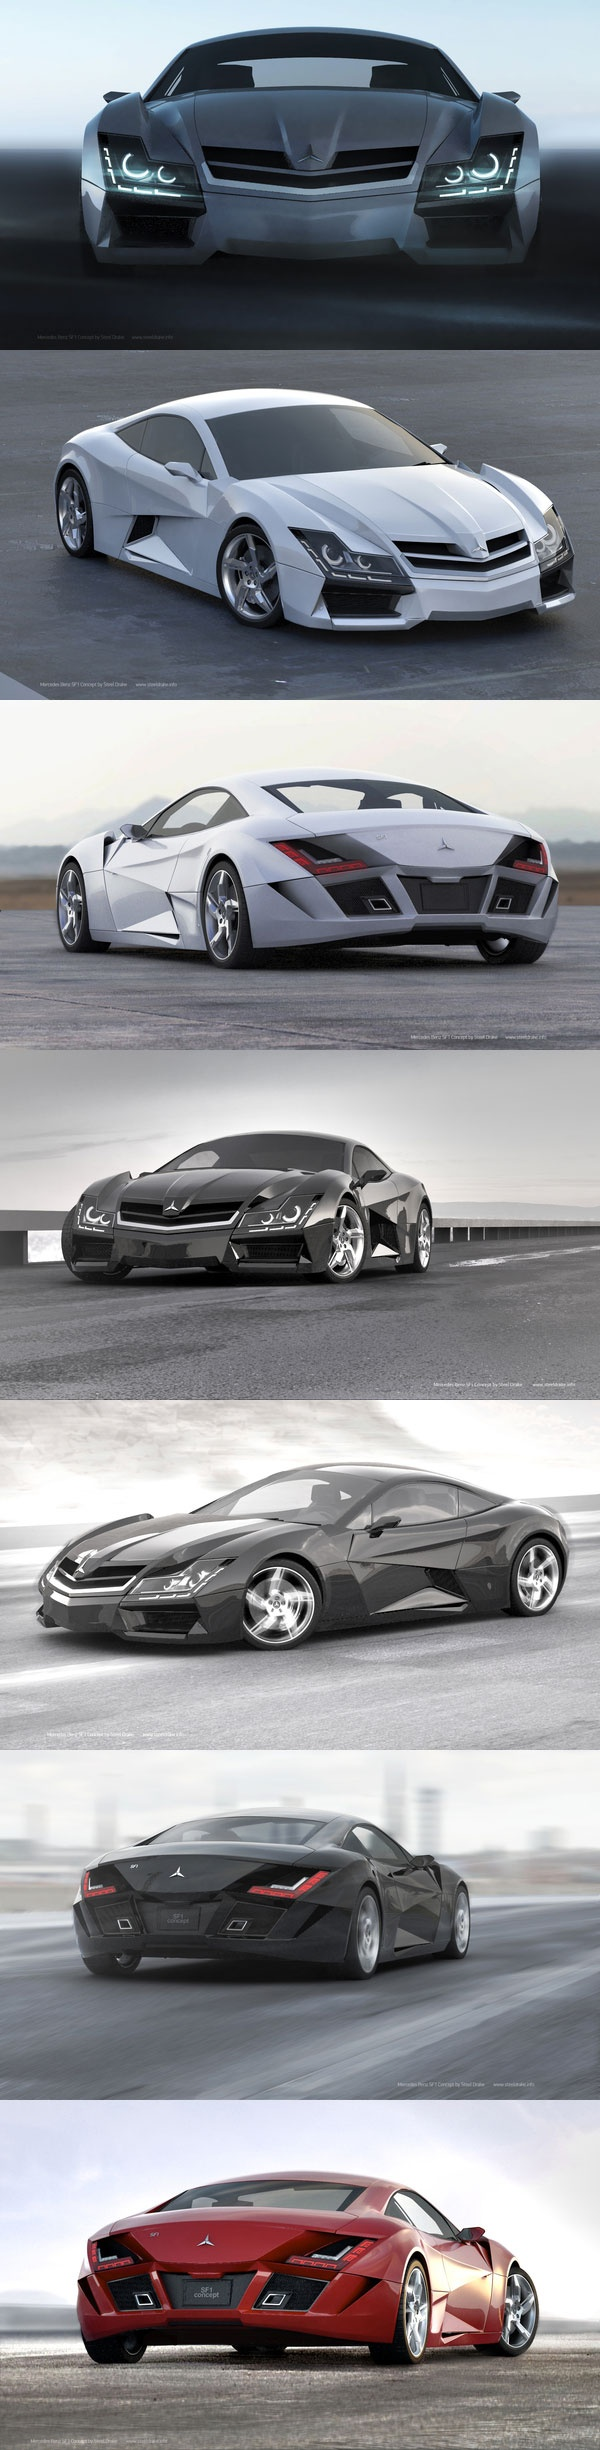 Mercedes super car concept ⚡️⚡️⚡️⚡️⚡️⚡️⚡️⚡️⚡️⚡️⚡️⚡️ **Product Launch** Instagram Automator & Instagram Automator Pro ⚡️⚡️⚡️⚡️⚡️⚡️⚡️⚡️⚡️⚡️⚡️⚡️ Front end product $9.95 90% paid to Affiliates Up sell Pro Edition $39.95 50% paid to Affiliates Paying out t